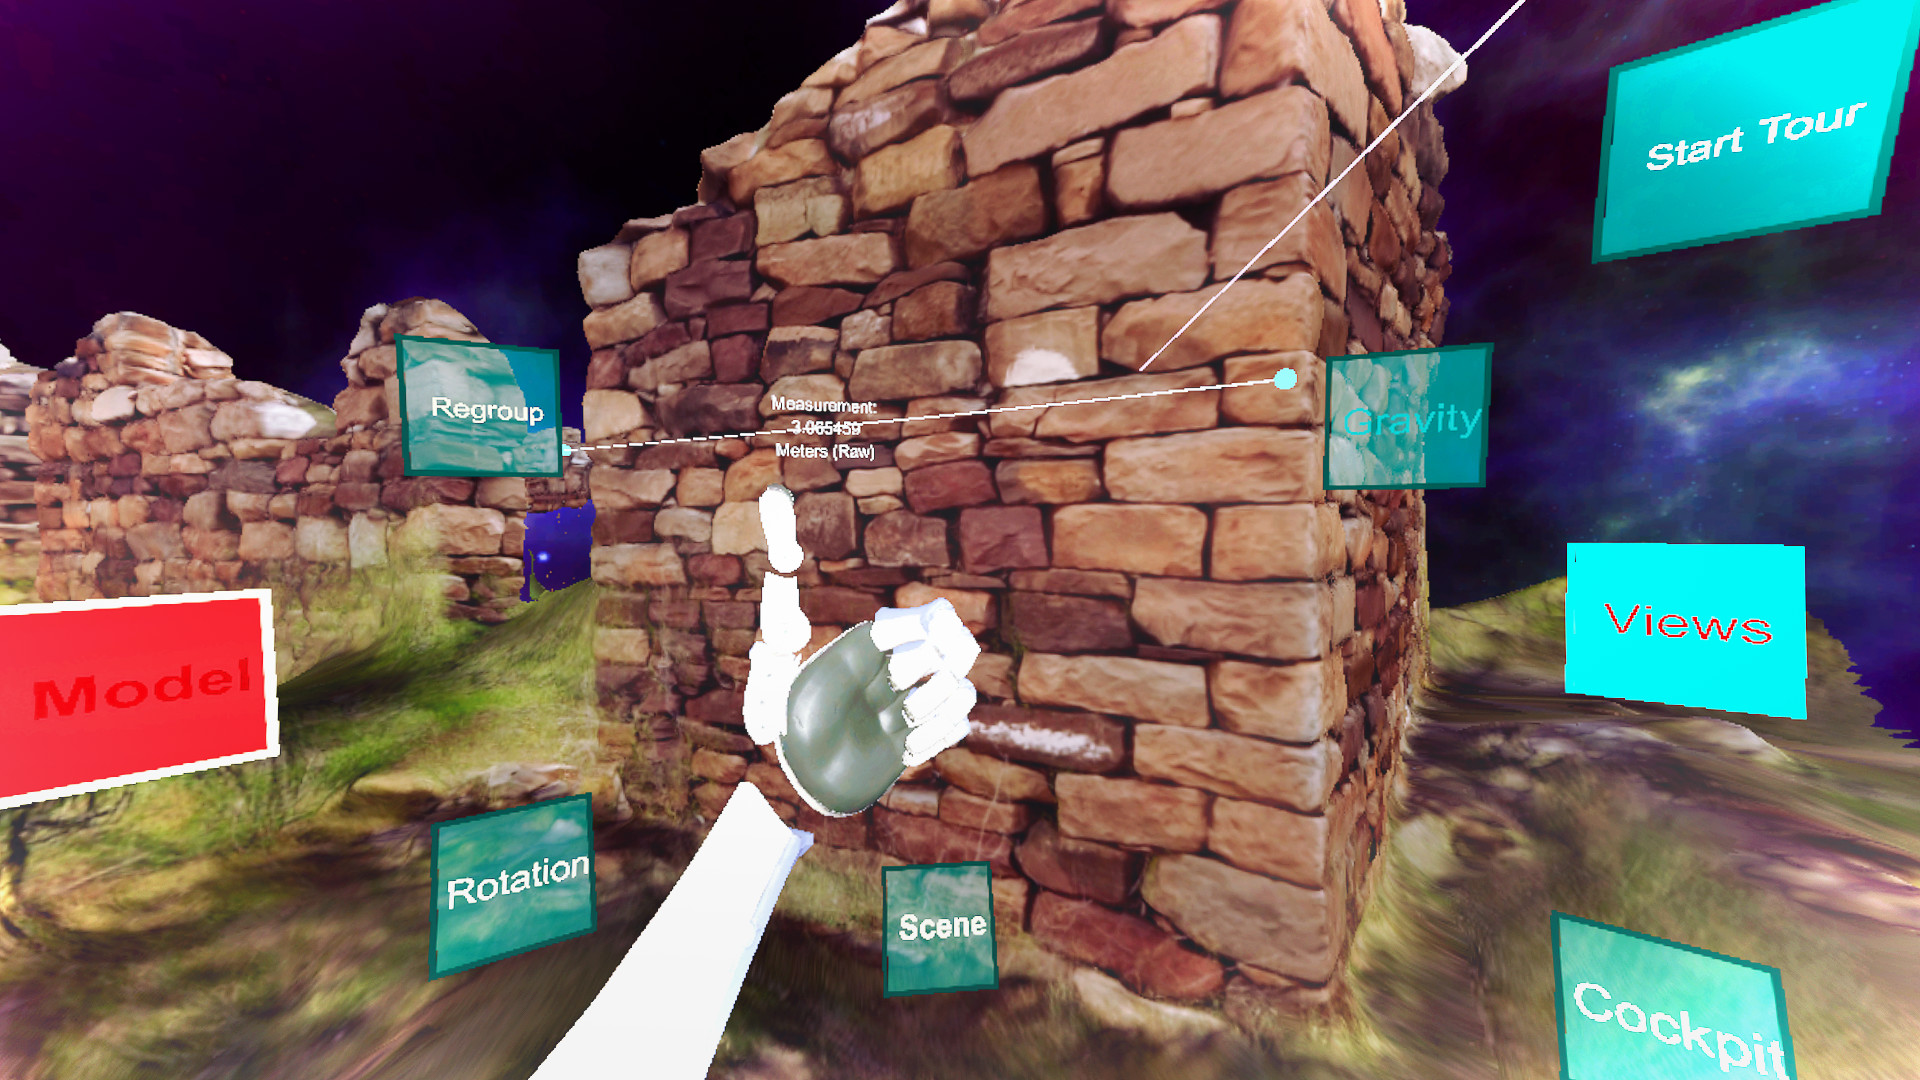 VR-based analysis of early 20th century sheepherder's ruins. Note the measurement tool.